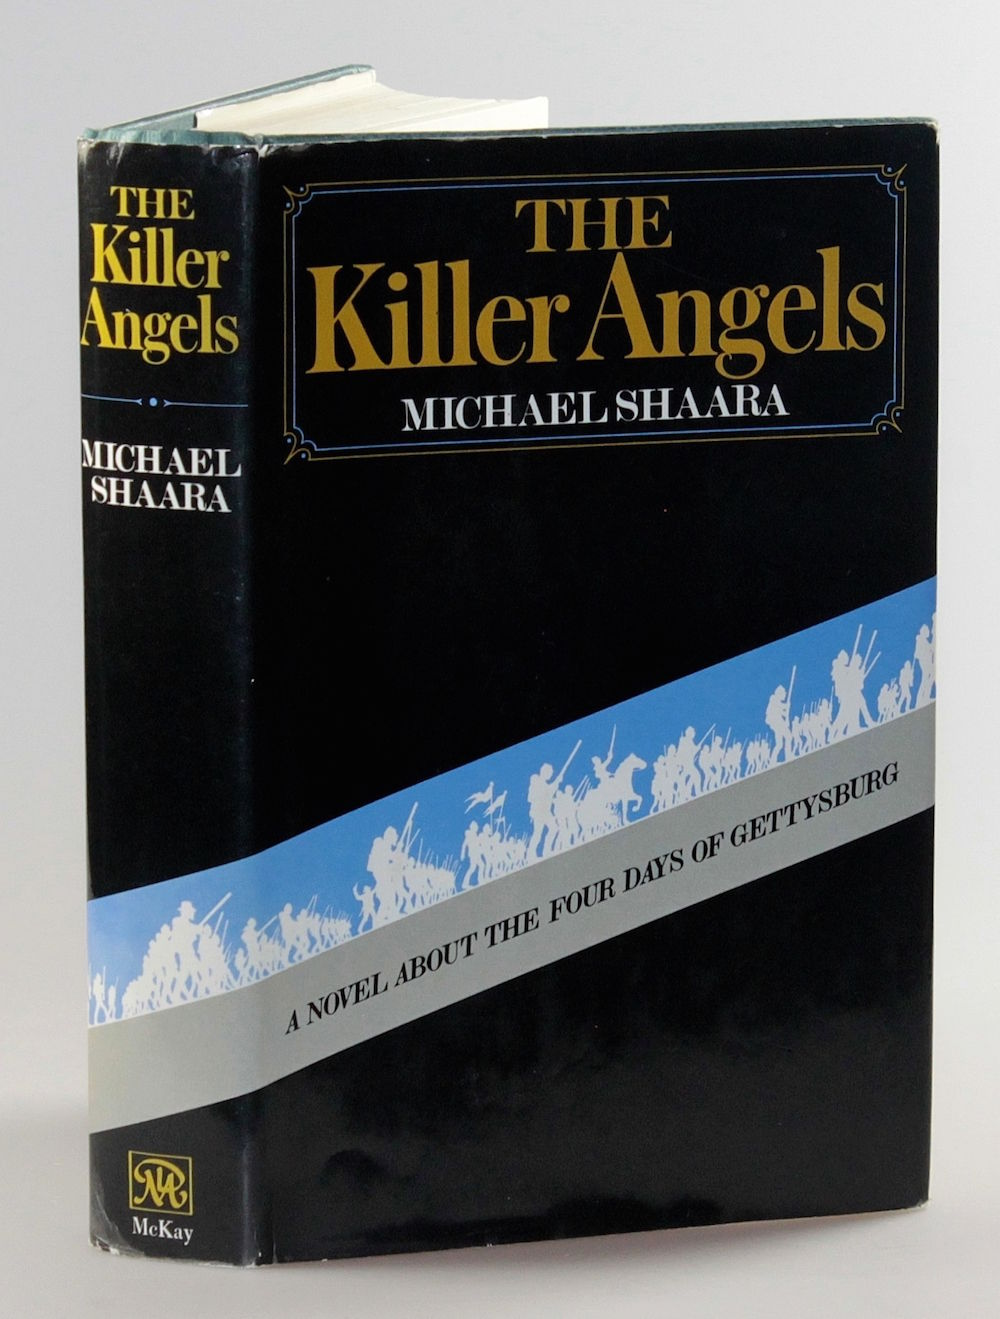 "the killer angels book review ""the killer angels"" was turned down by 15 publishers before it was accepted in 1972 by the david mckay company, which was best known as a publisher of comic books like ""blondie,"" ""dick tracy"" and ""popeye"" mckay was acquired by random house in 1973 and published the book in 1974 the initial production run was only 3,500 copies."